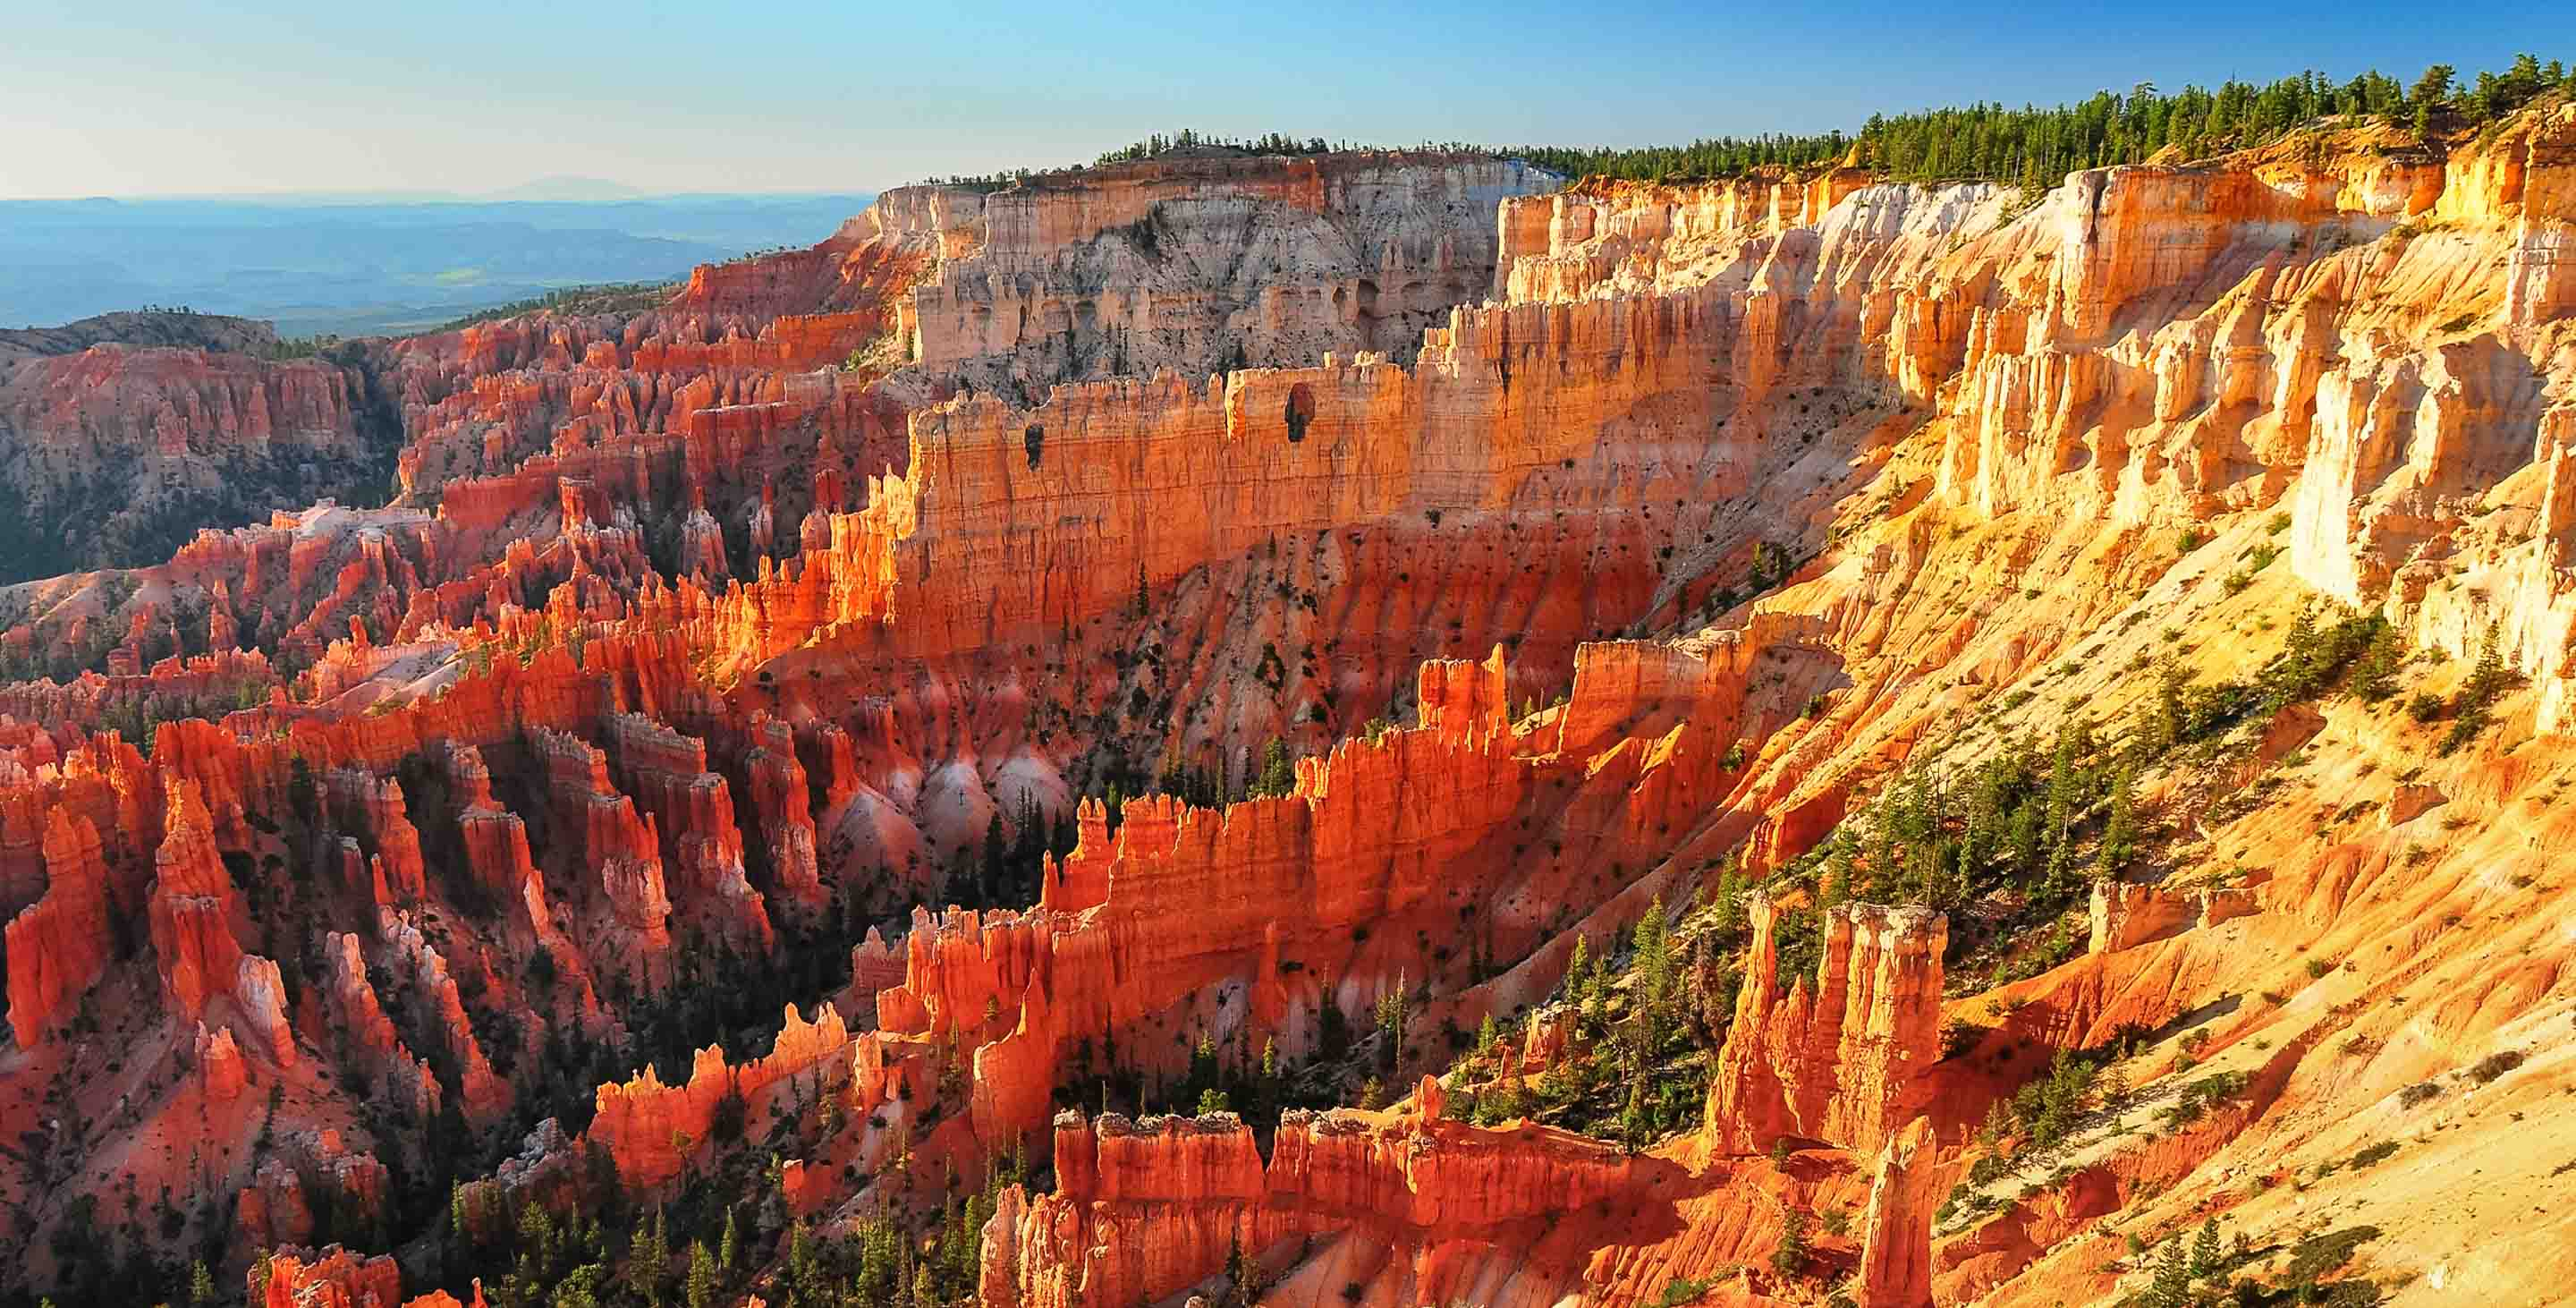 Overlook view of Bryce Canyon National Park at sunrise.